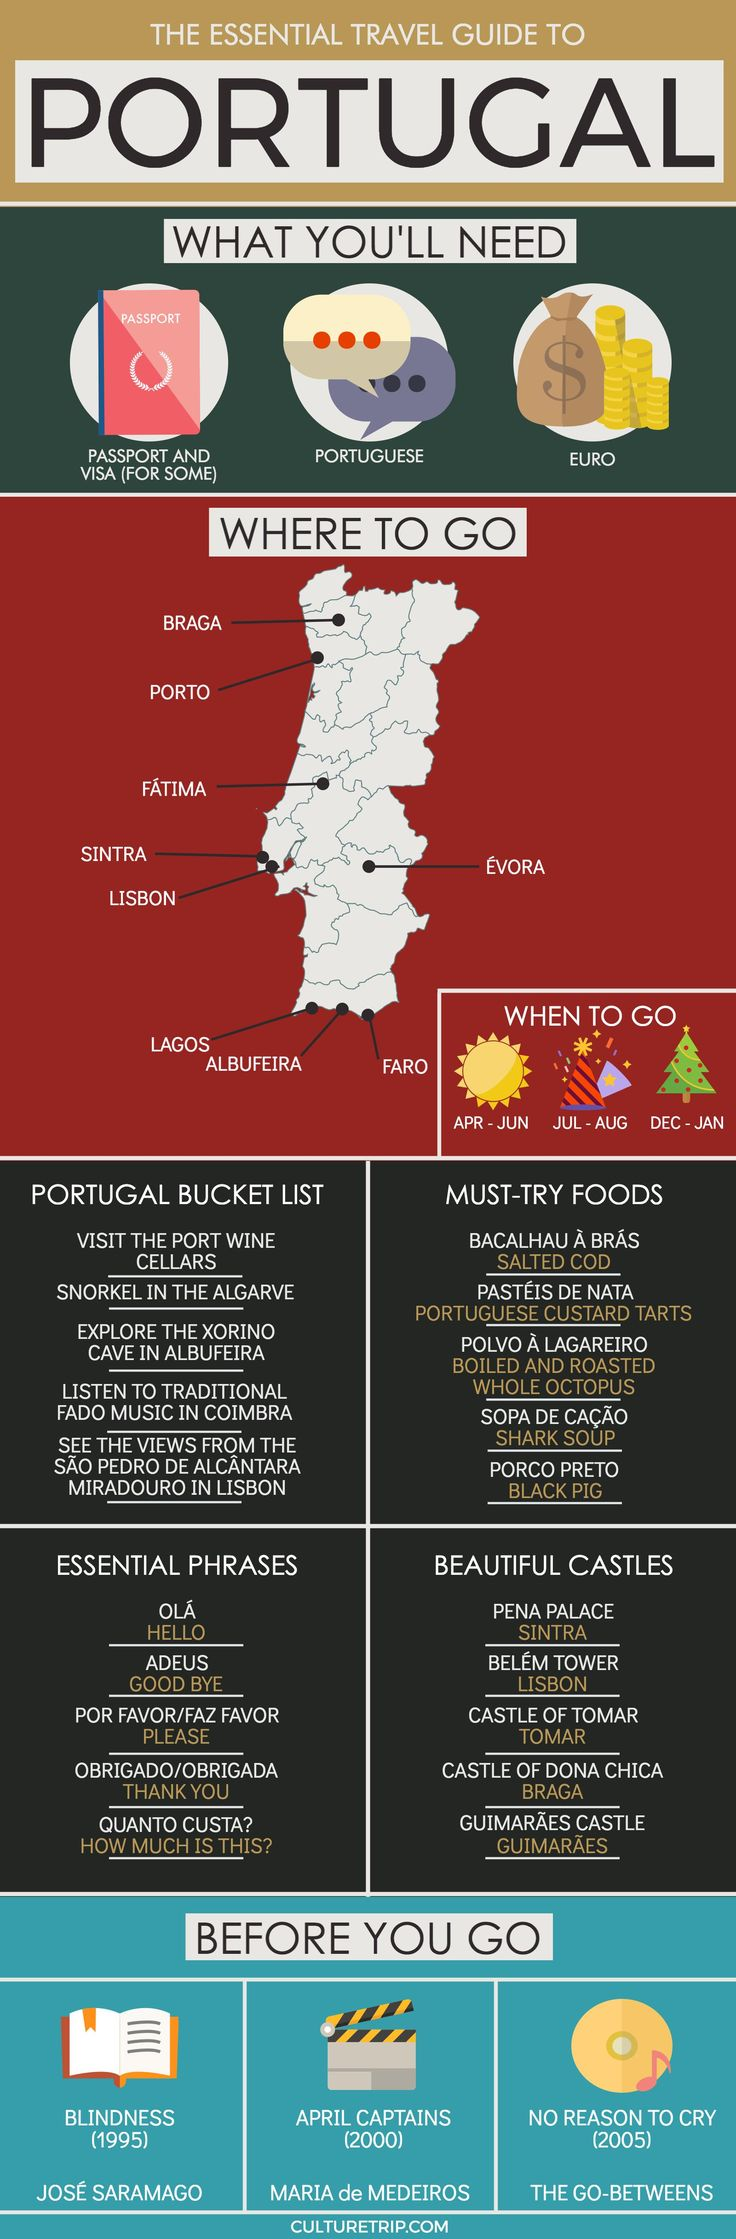 The Essential Travel Guide to Portugal (Infographic)|Pinterest: @theculturetrip